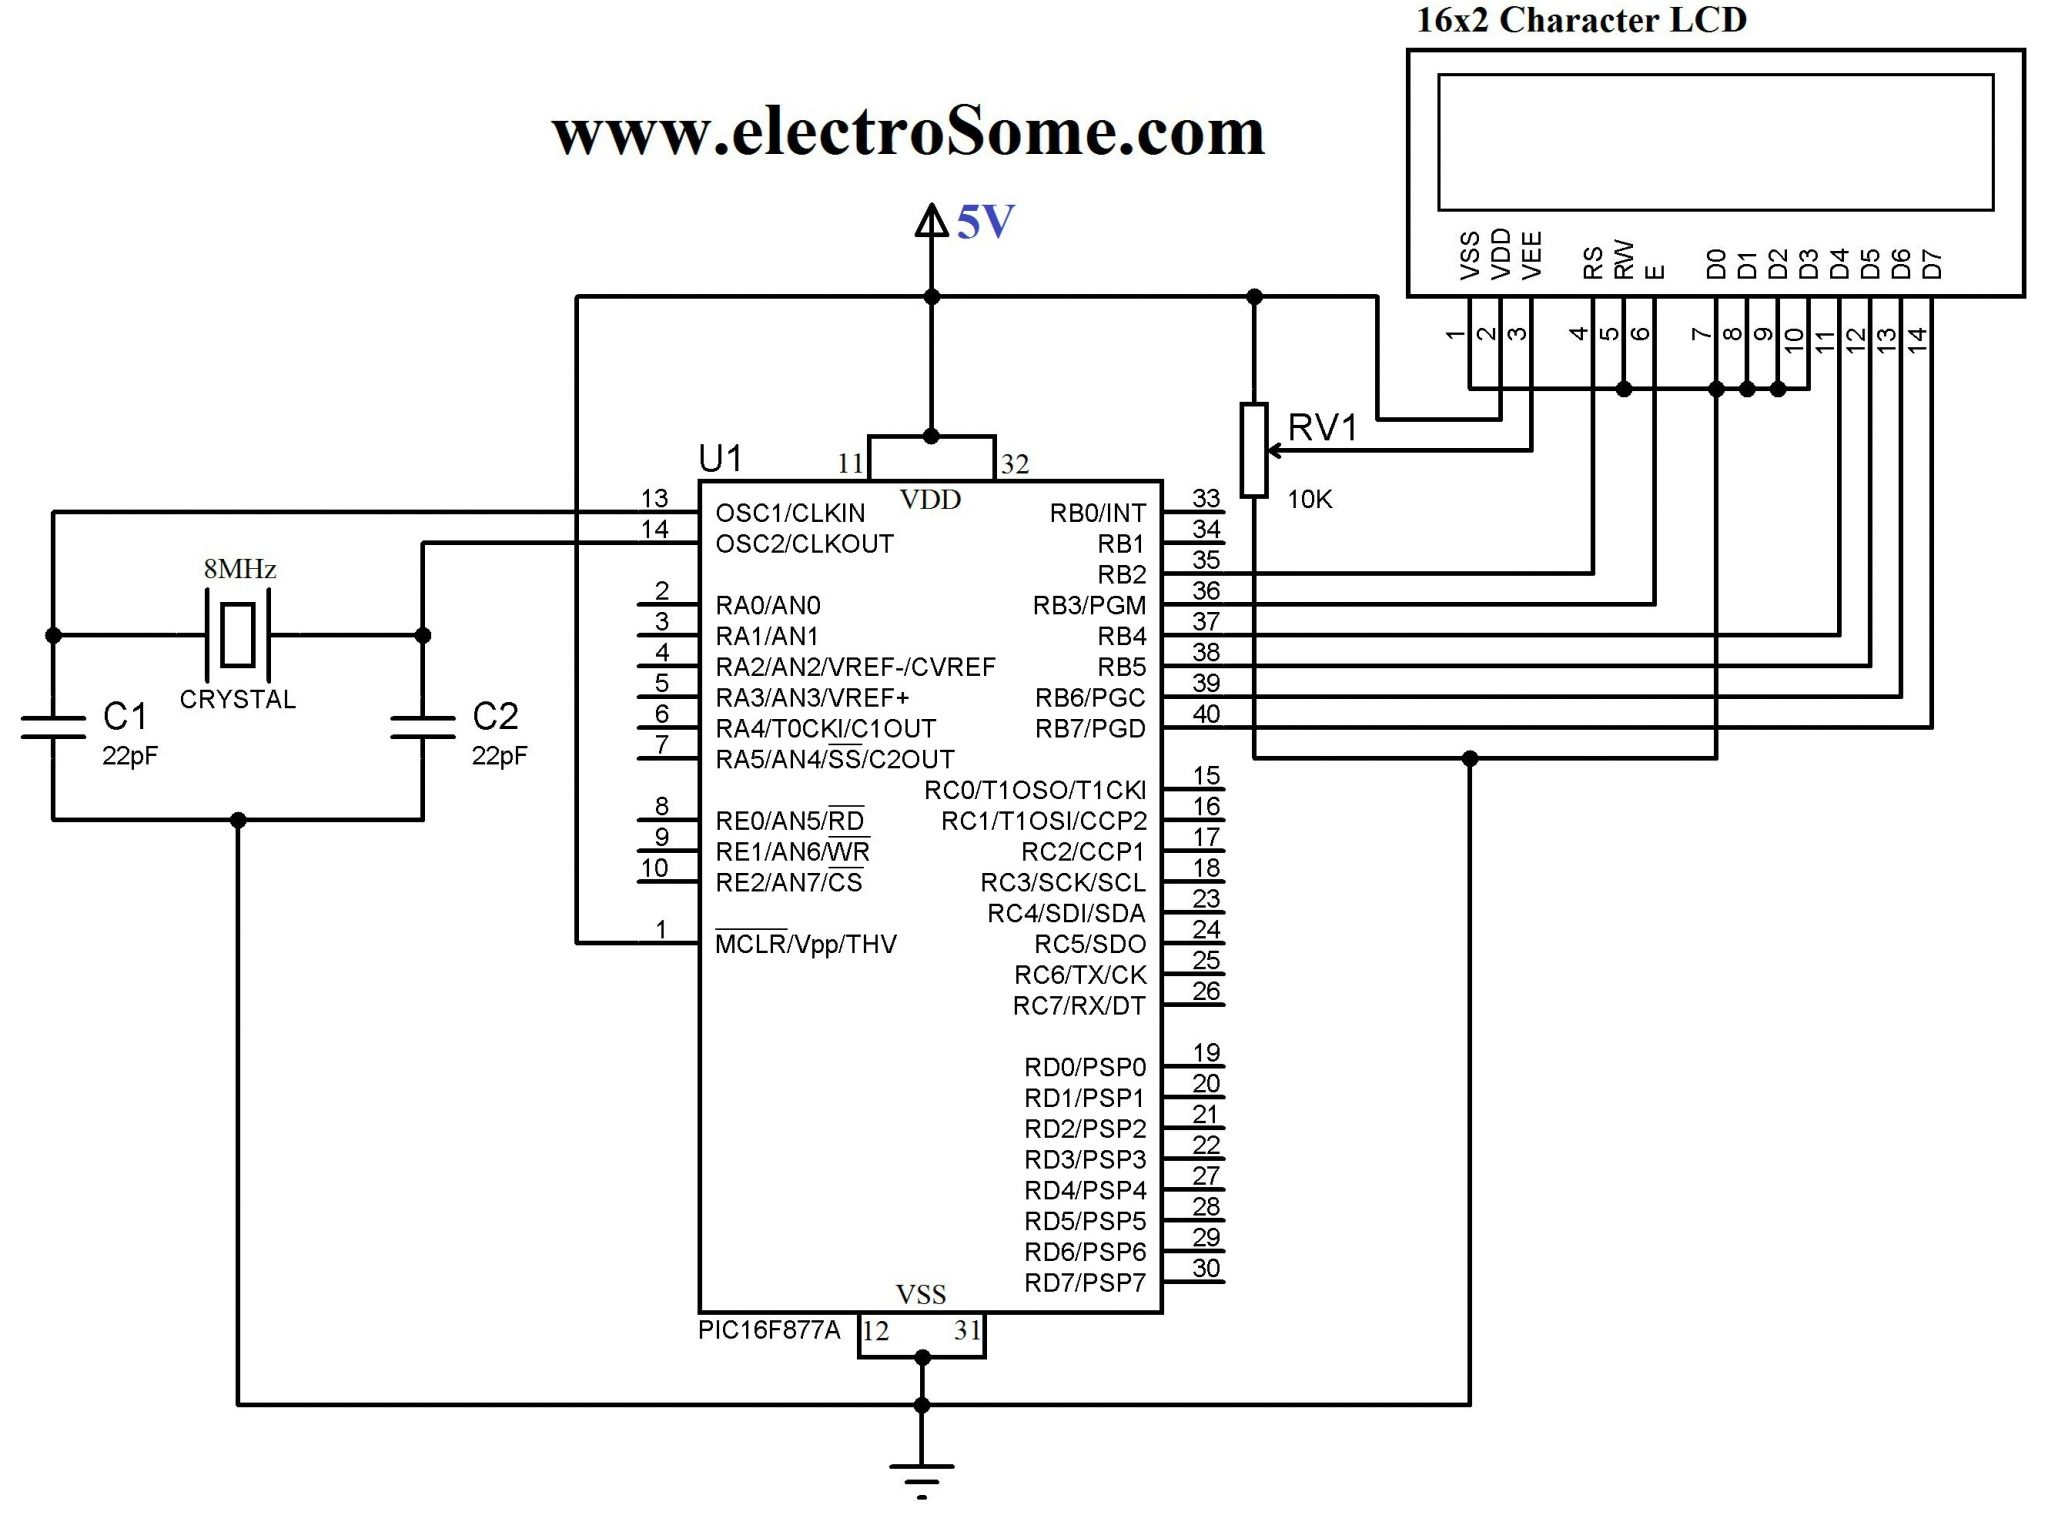 Circuit Diagram. Interfacing LCD with PIC Microcontroller - 4 Bit Mode